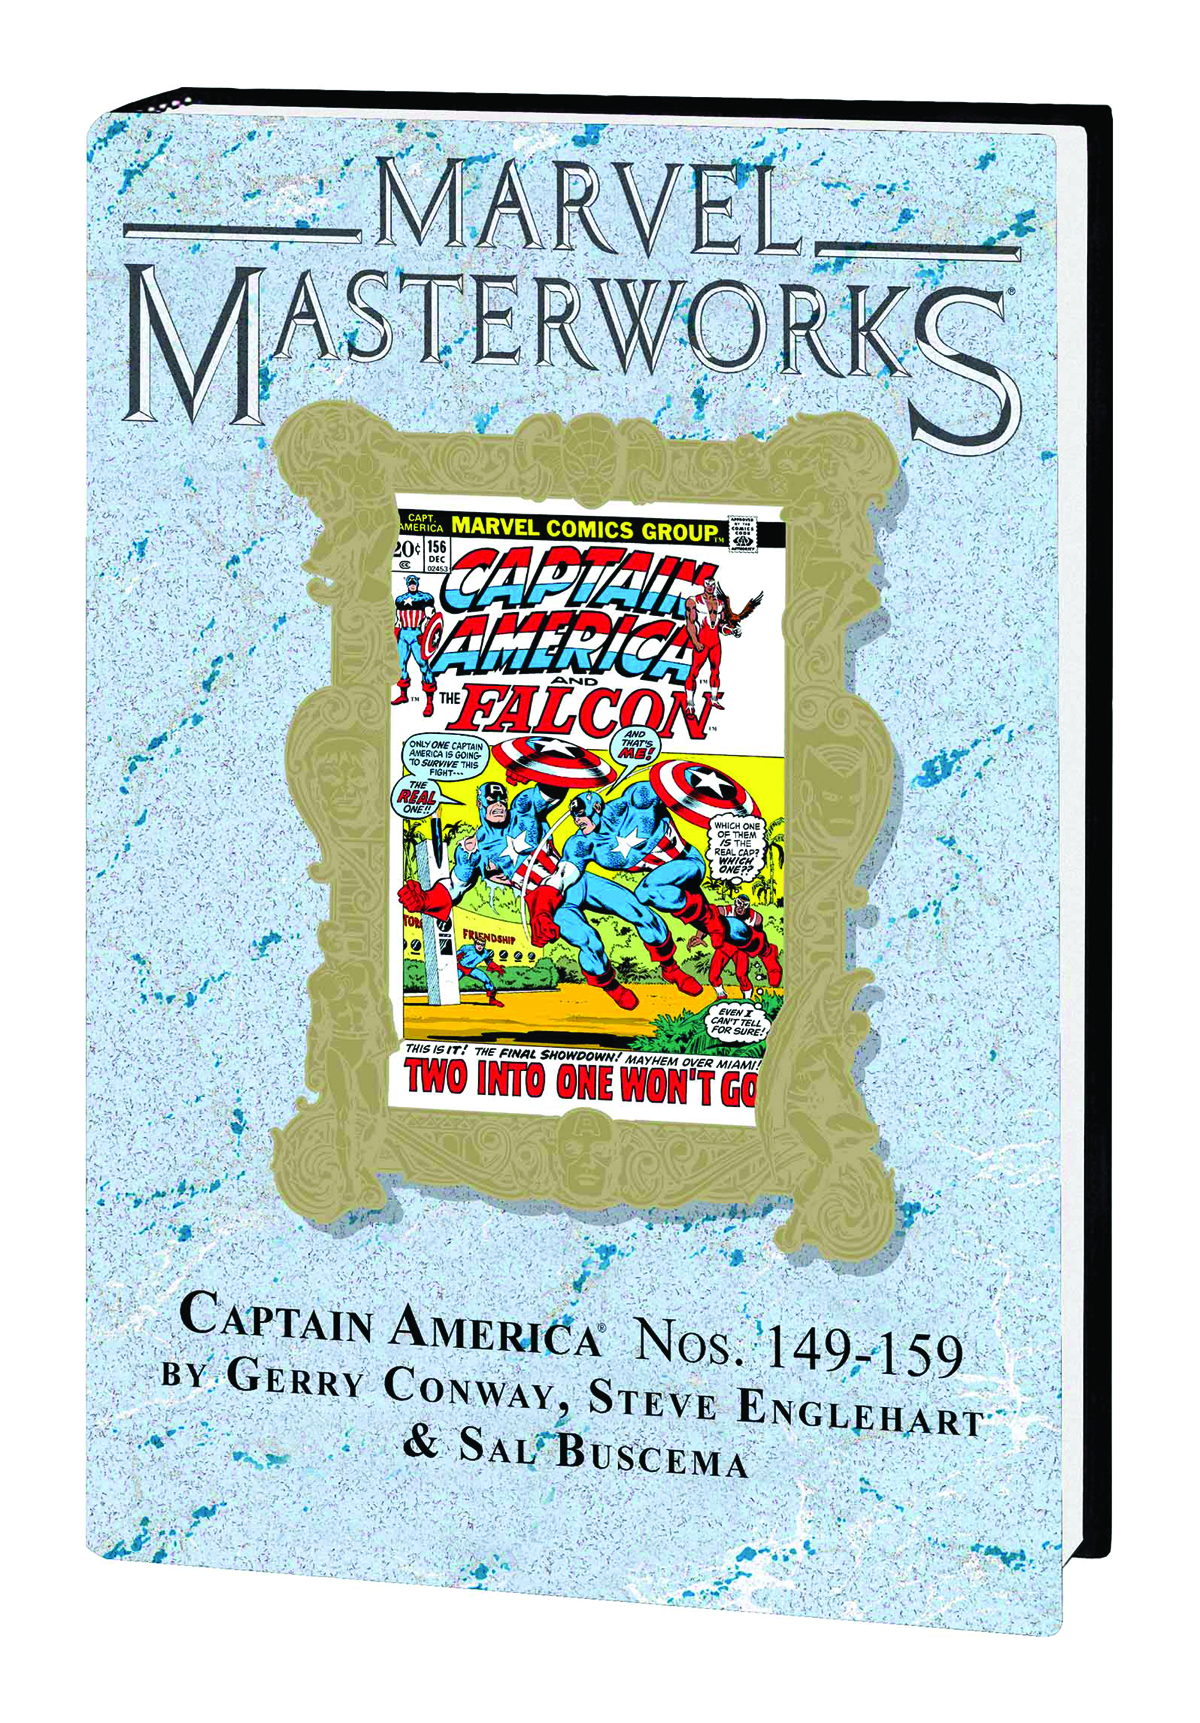 MMW CAPTAIN AMERICA HC VOL 07 DM VAR ED 204